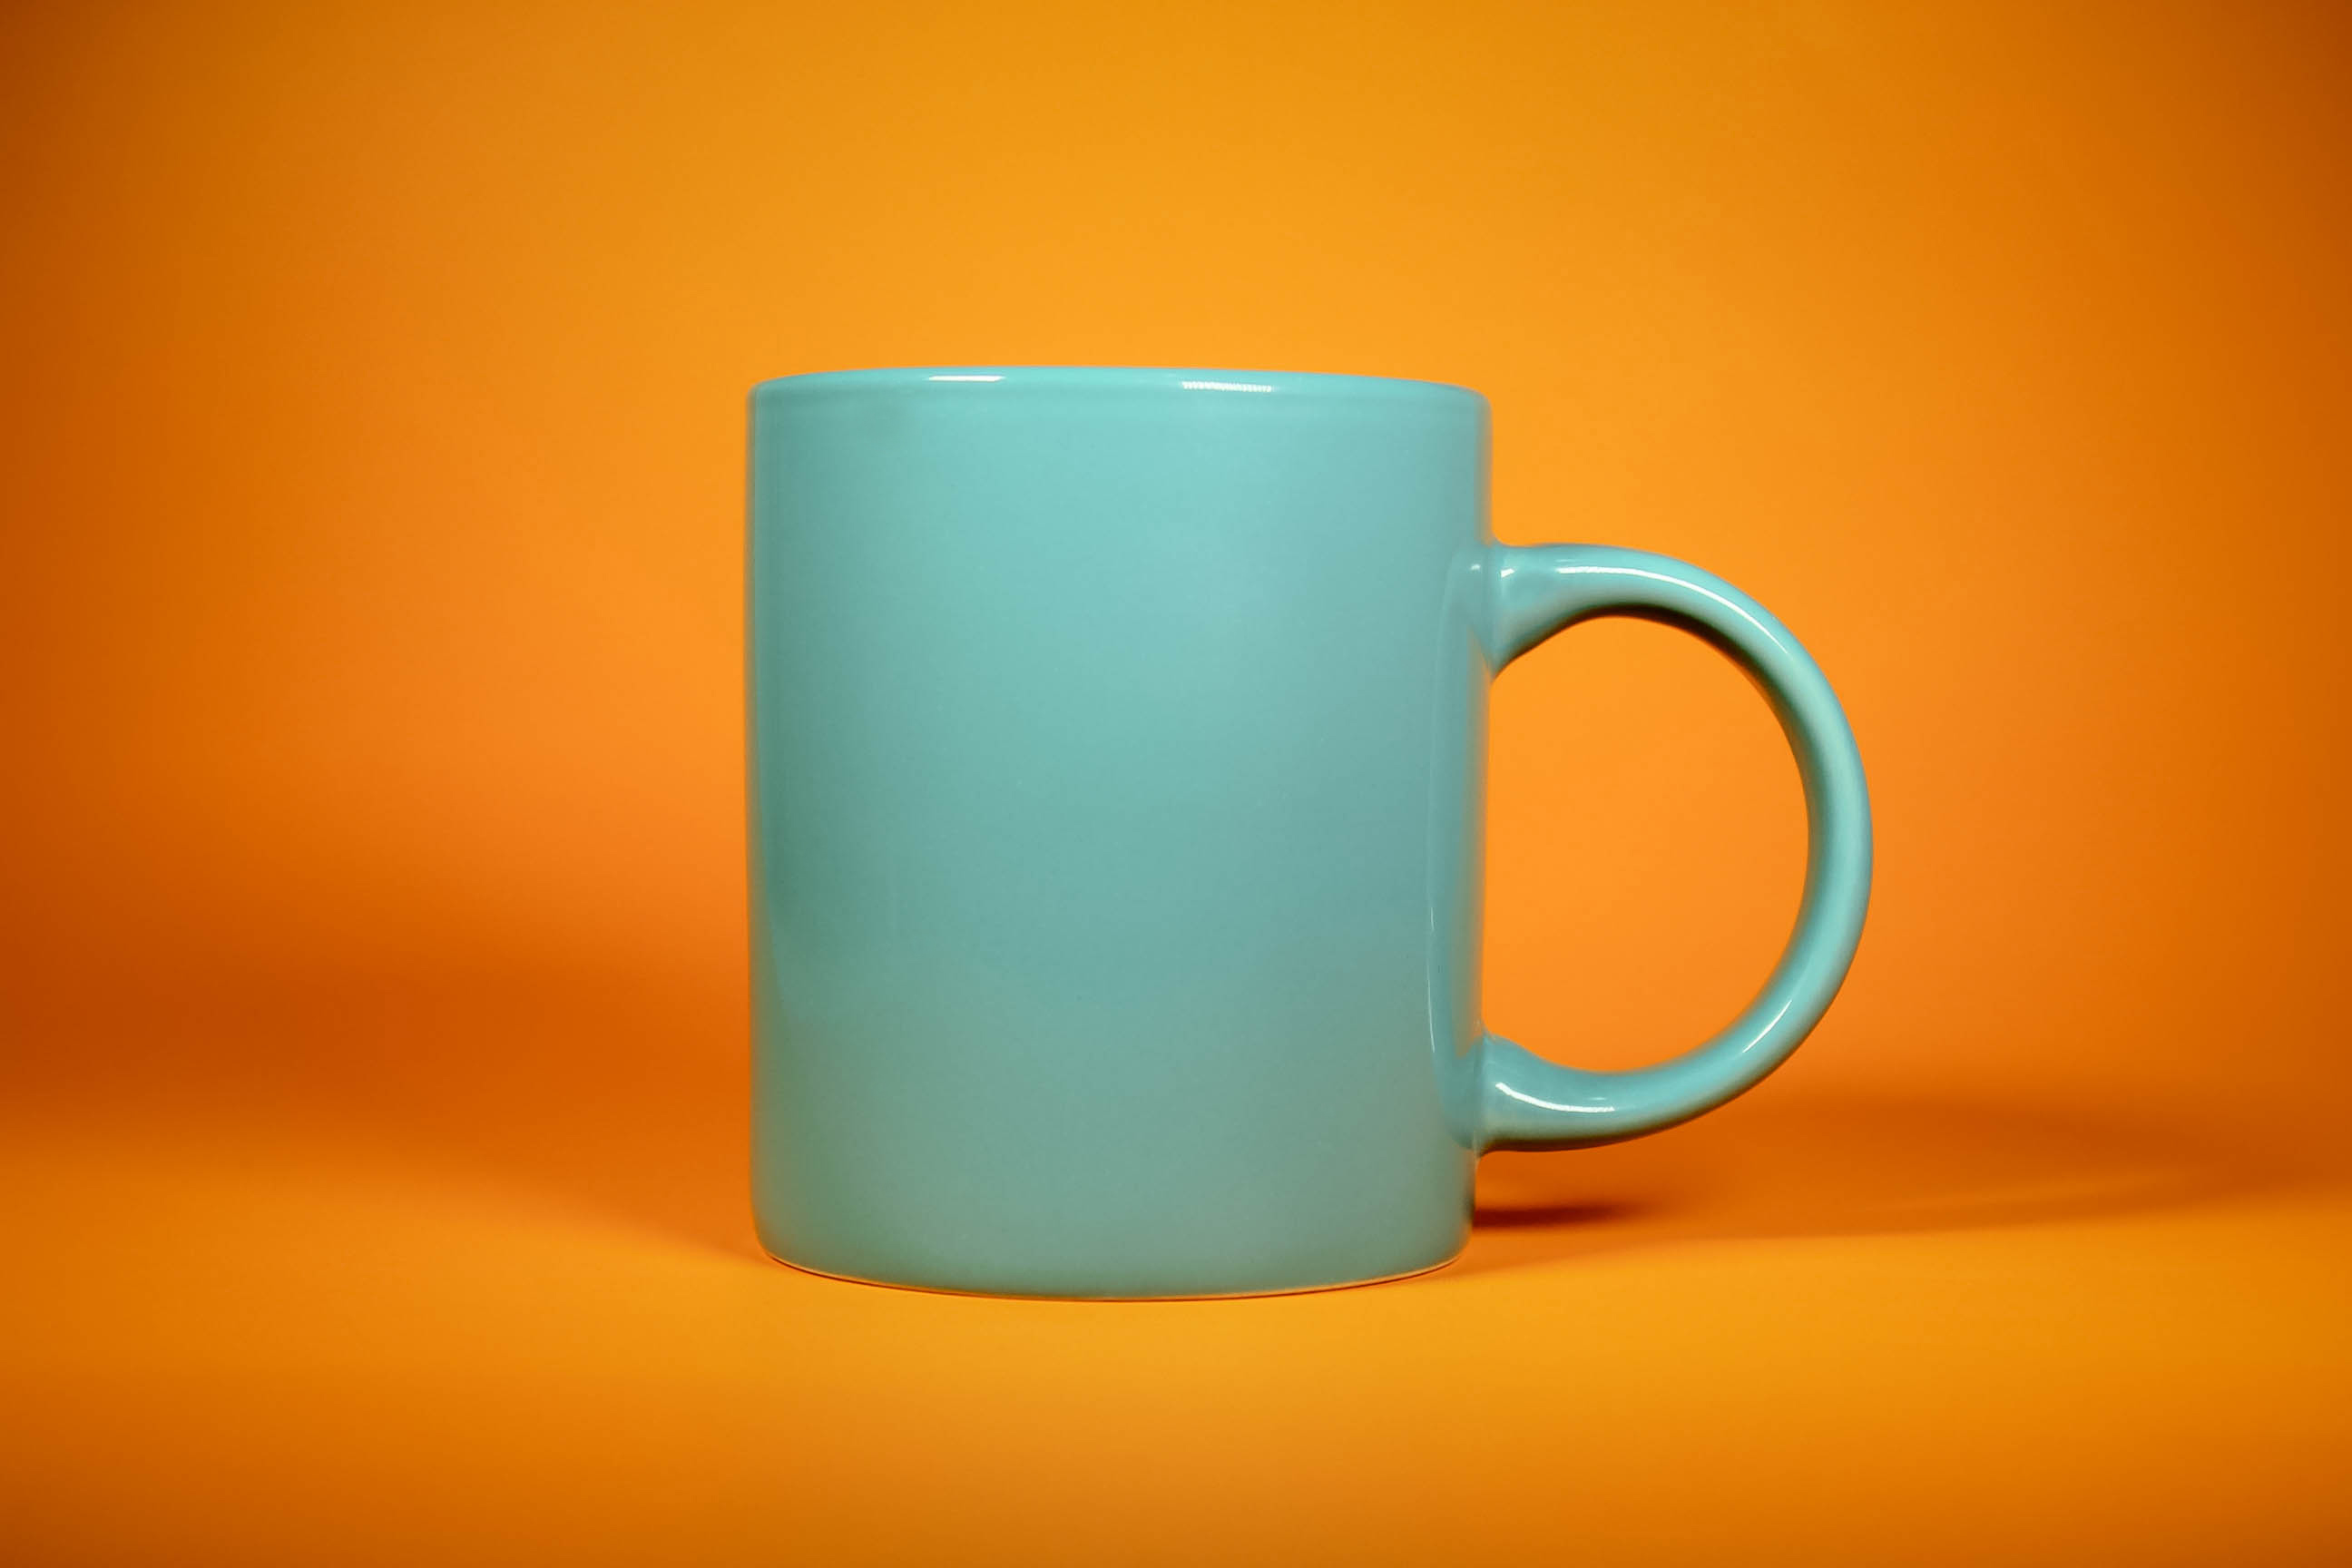 Mug mockup in an oragne background.